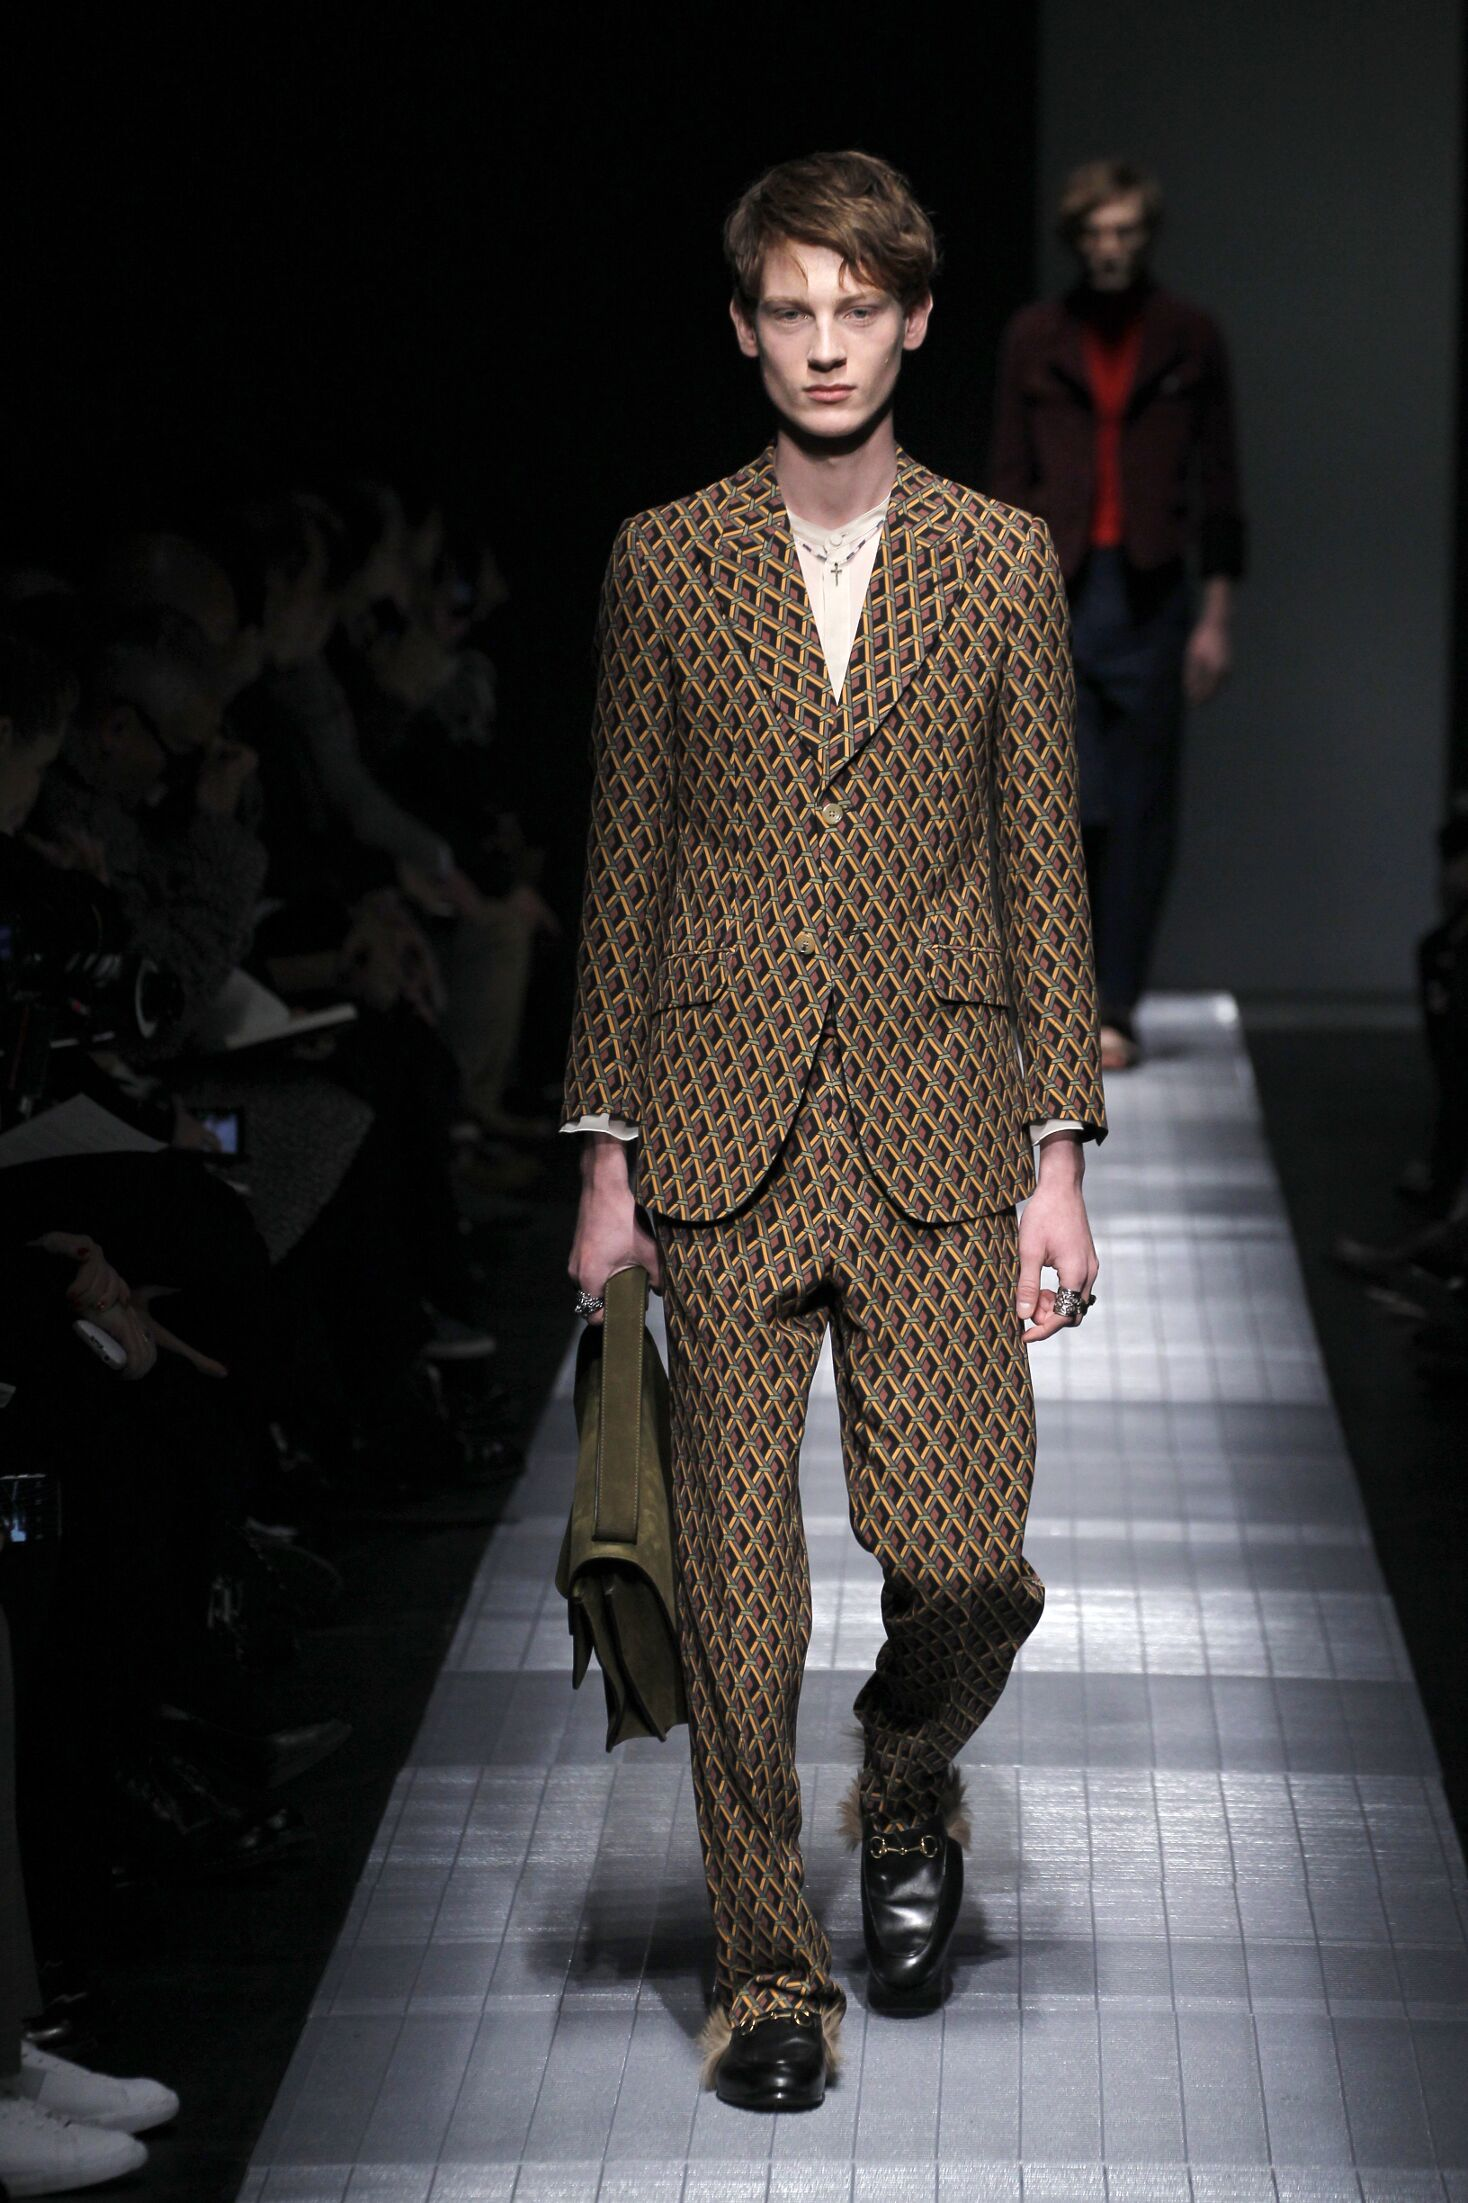 Gucci Fall Winter 2015 16 Men's Collection Milan Fashion Week Fashion Show